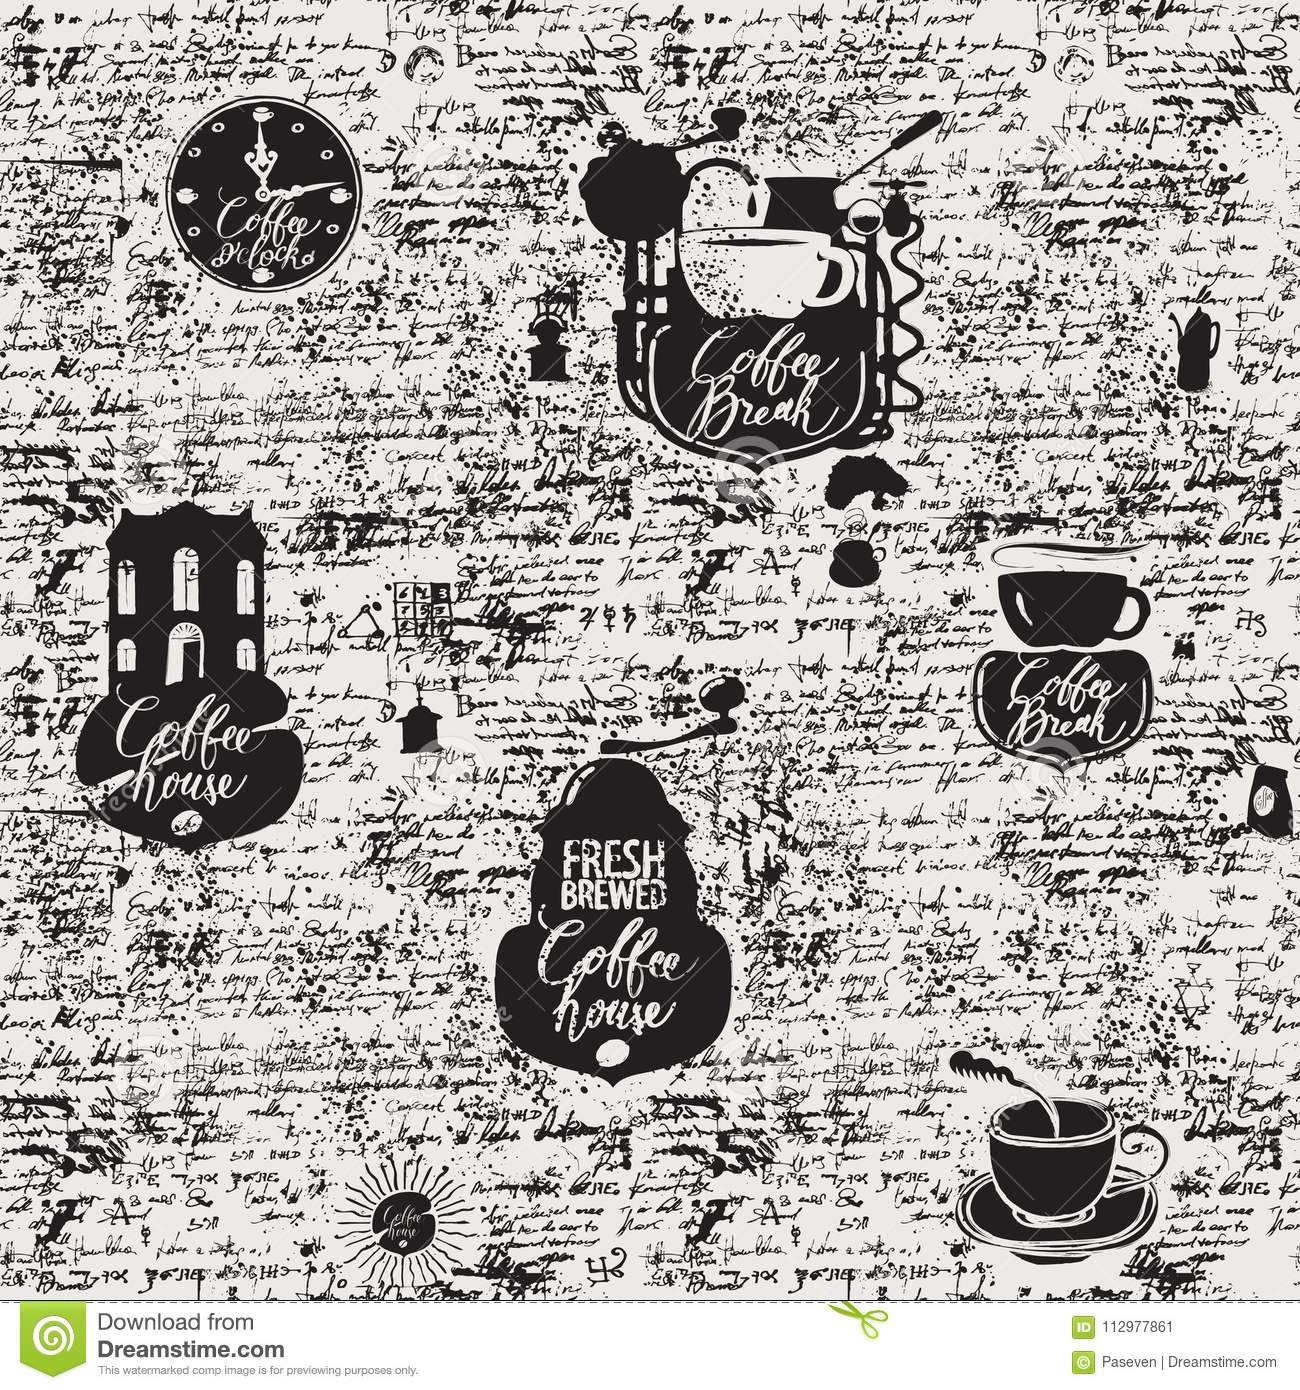 Grunge seamless background on coffee theme